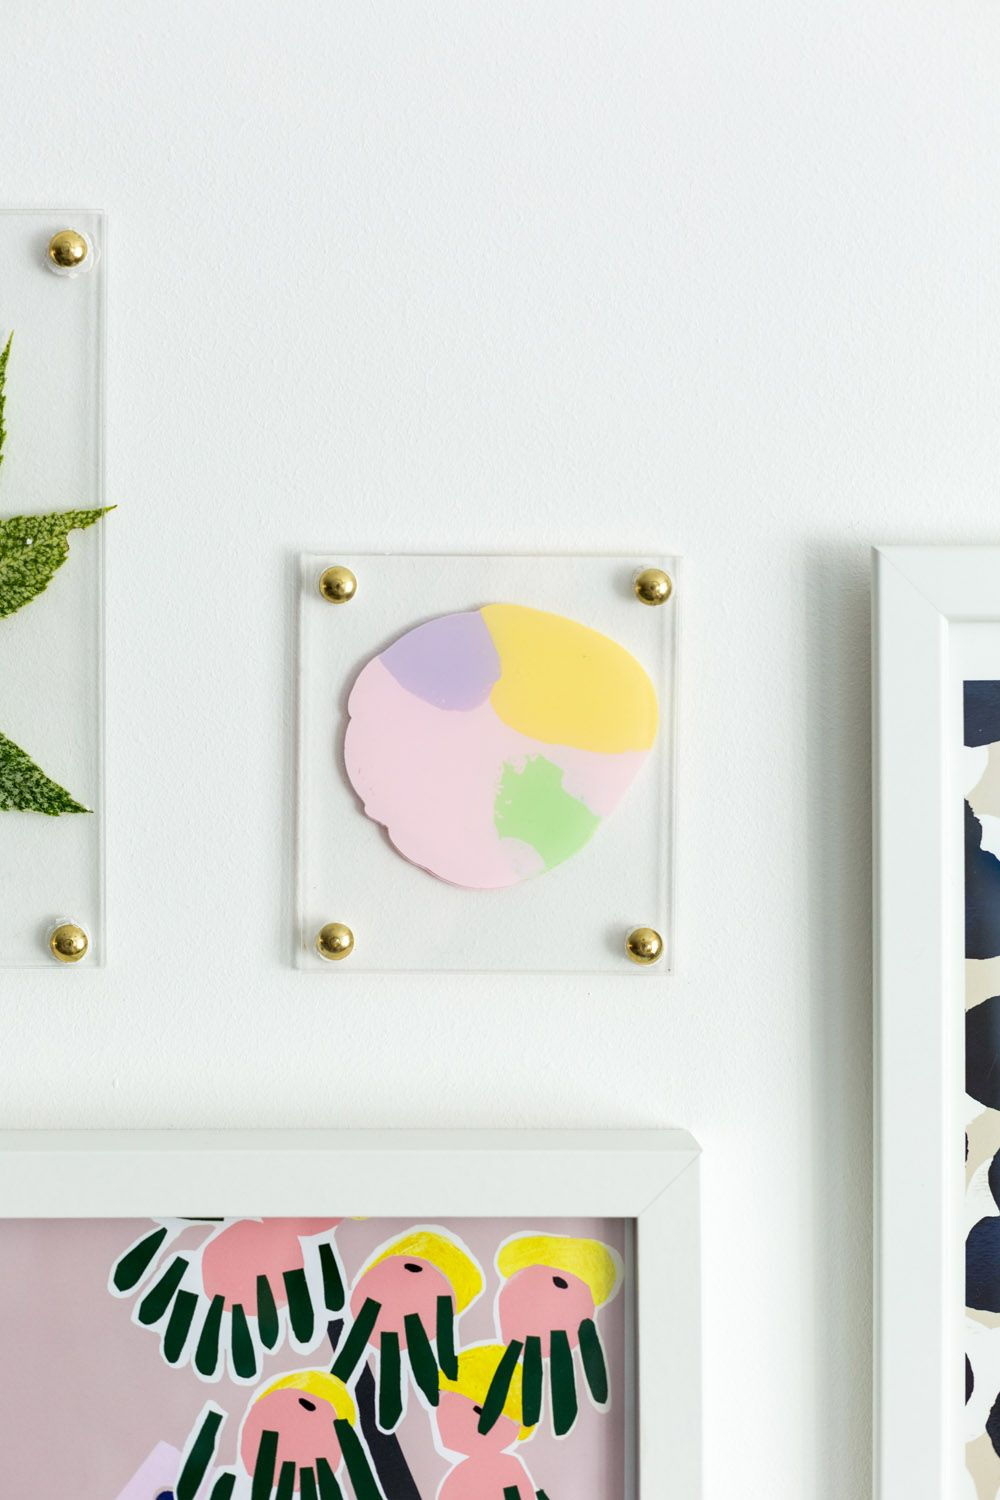 DIY No Drill Acrylic Picture Frames | Pinterest | Acrylic picture ...